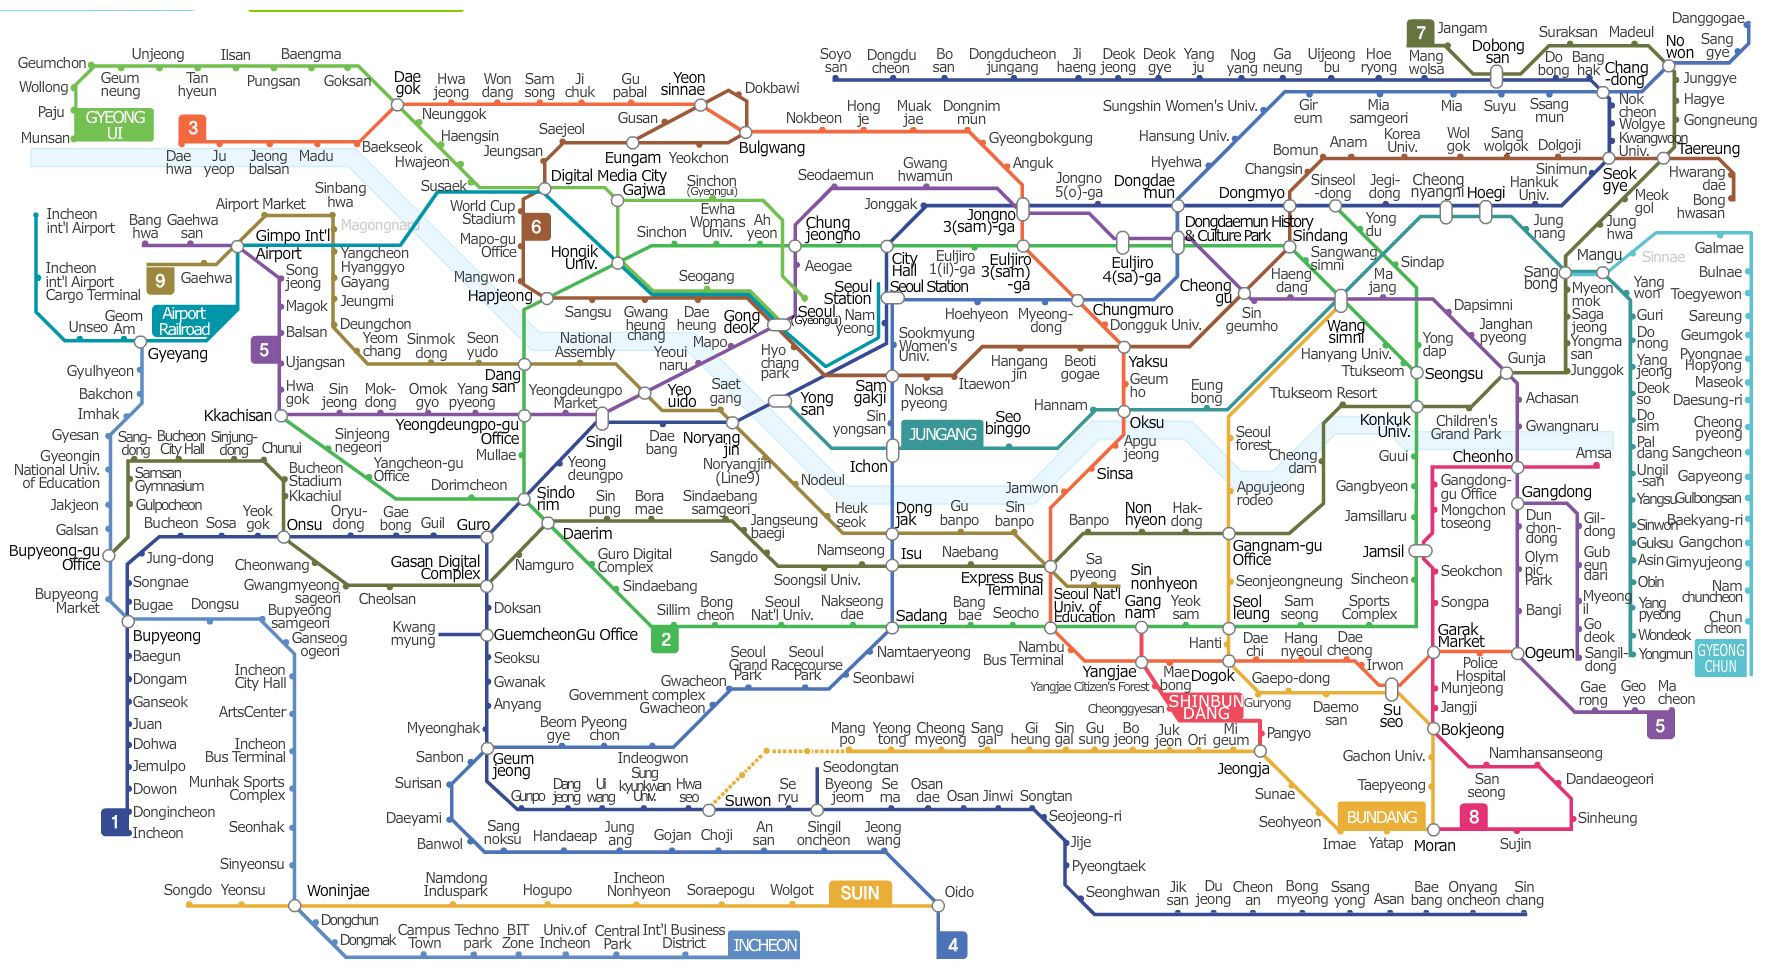 Eoul Subway Map.Seoul Subway Map Seoul Korea Tour